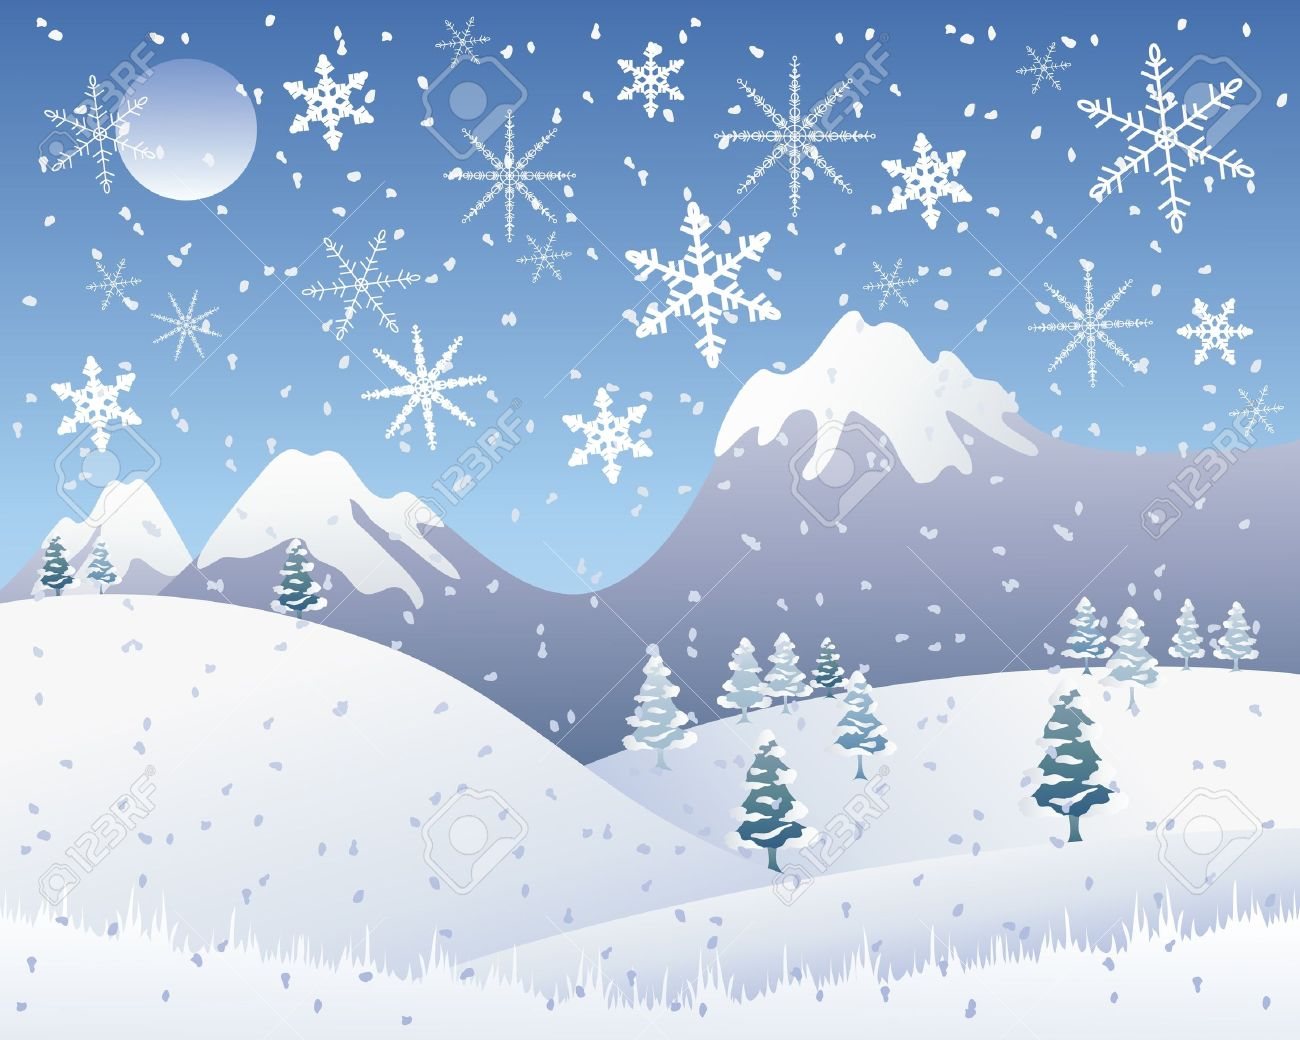 An Illustration Of A Snowy Christmas Landscape With Snow Capped ...